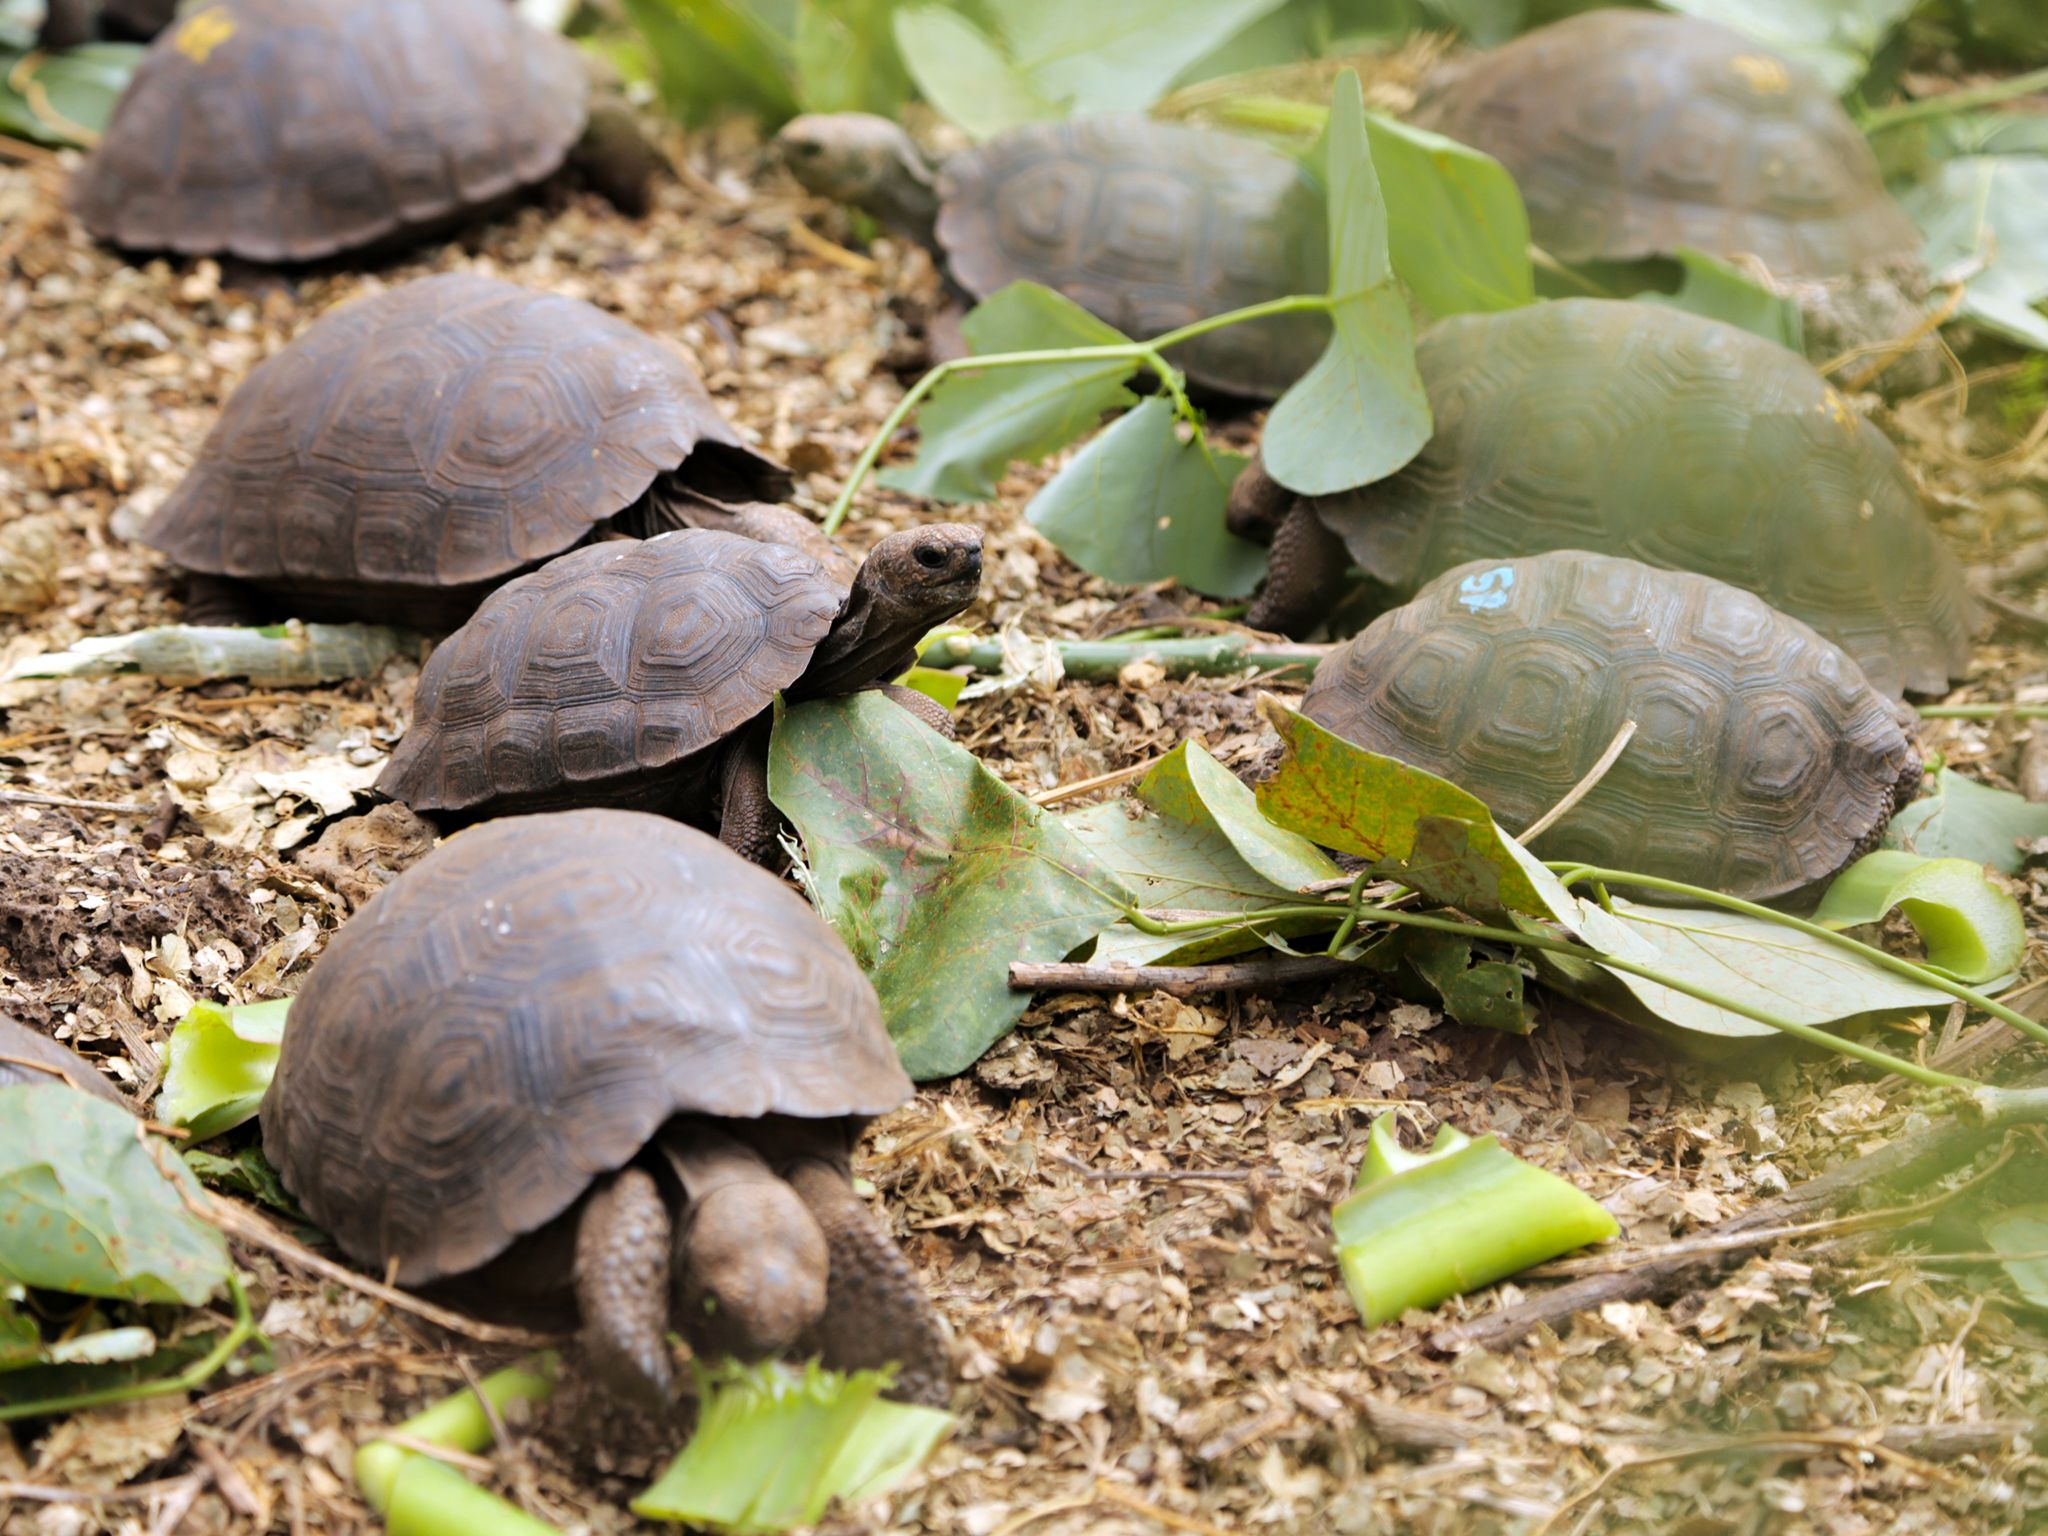 Puerto Ayora, Santa Cruz Island, Galapagos, Ecuador: Baby giant Galapagos tortoises feast on leav... [Photo of the day - دسامبر 2014]